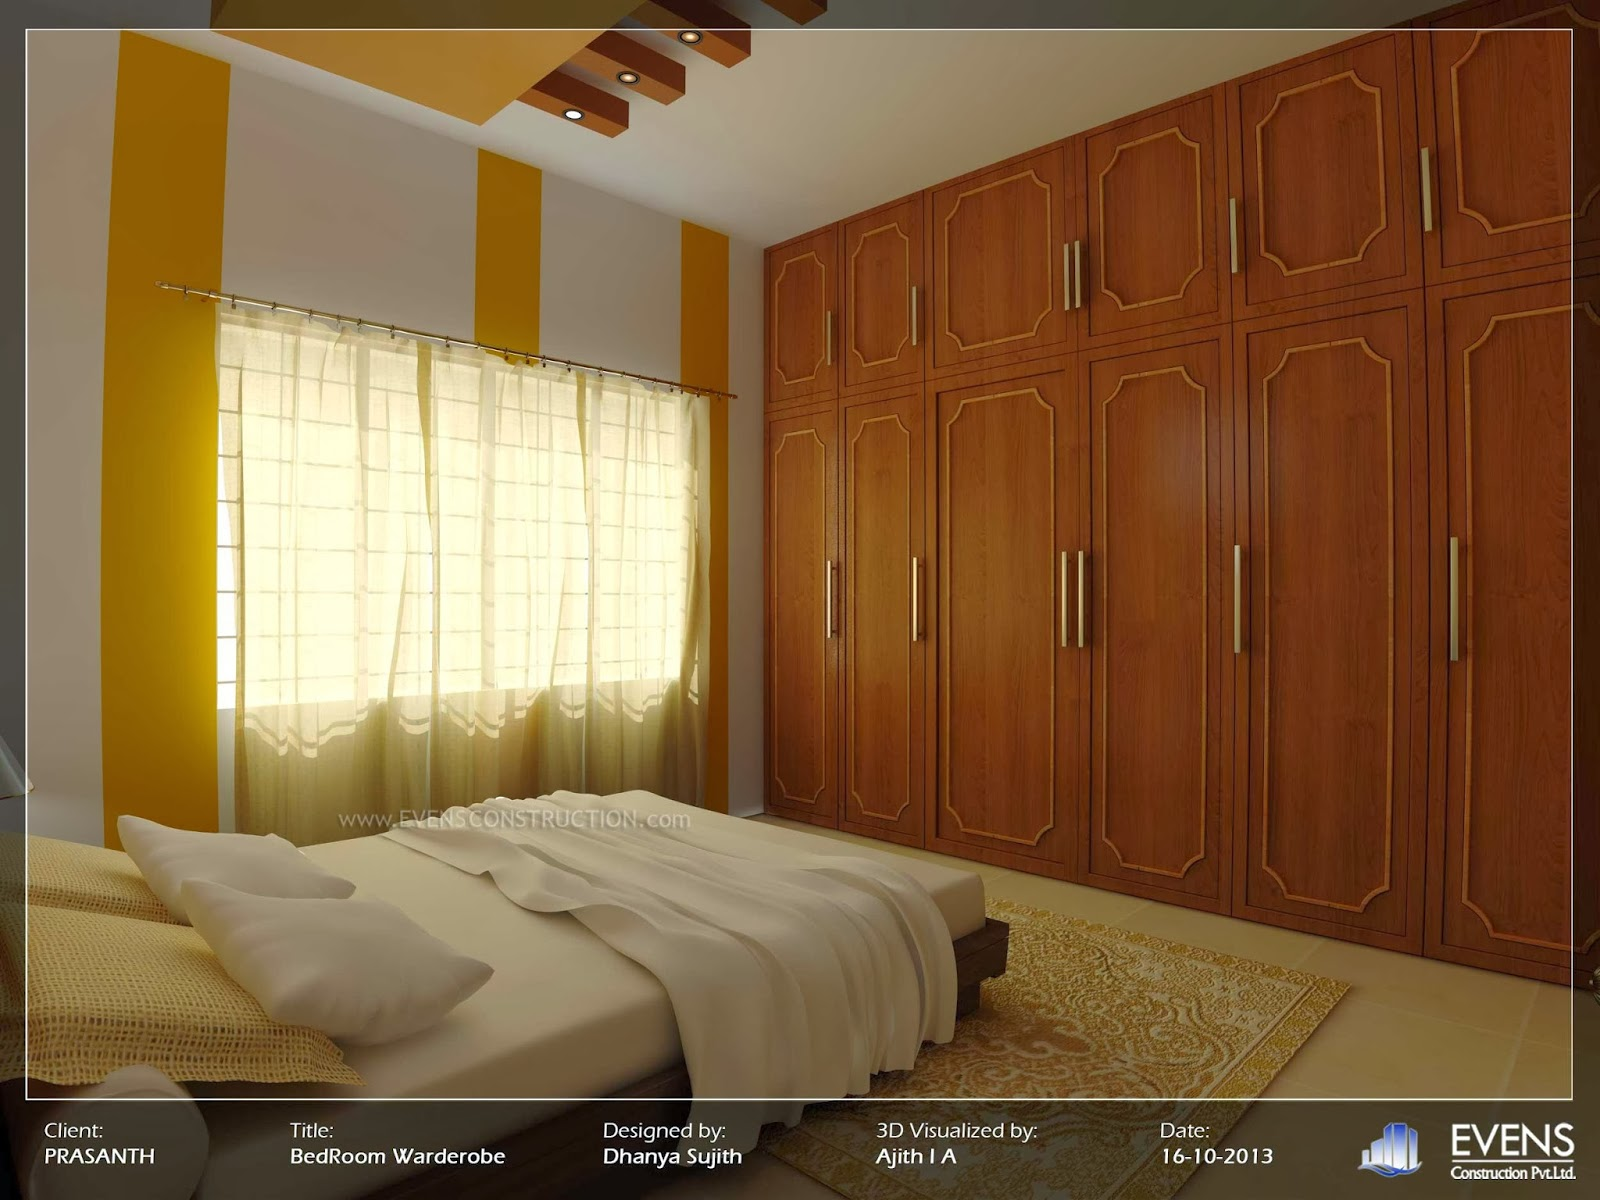 Evens Construction Pvt Ltd: Kerala Style Bedroom Wardrobe